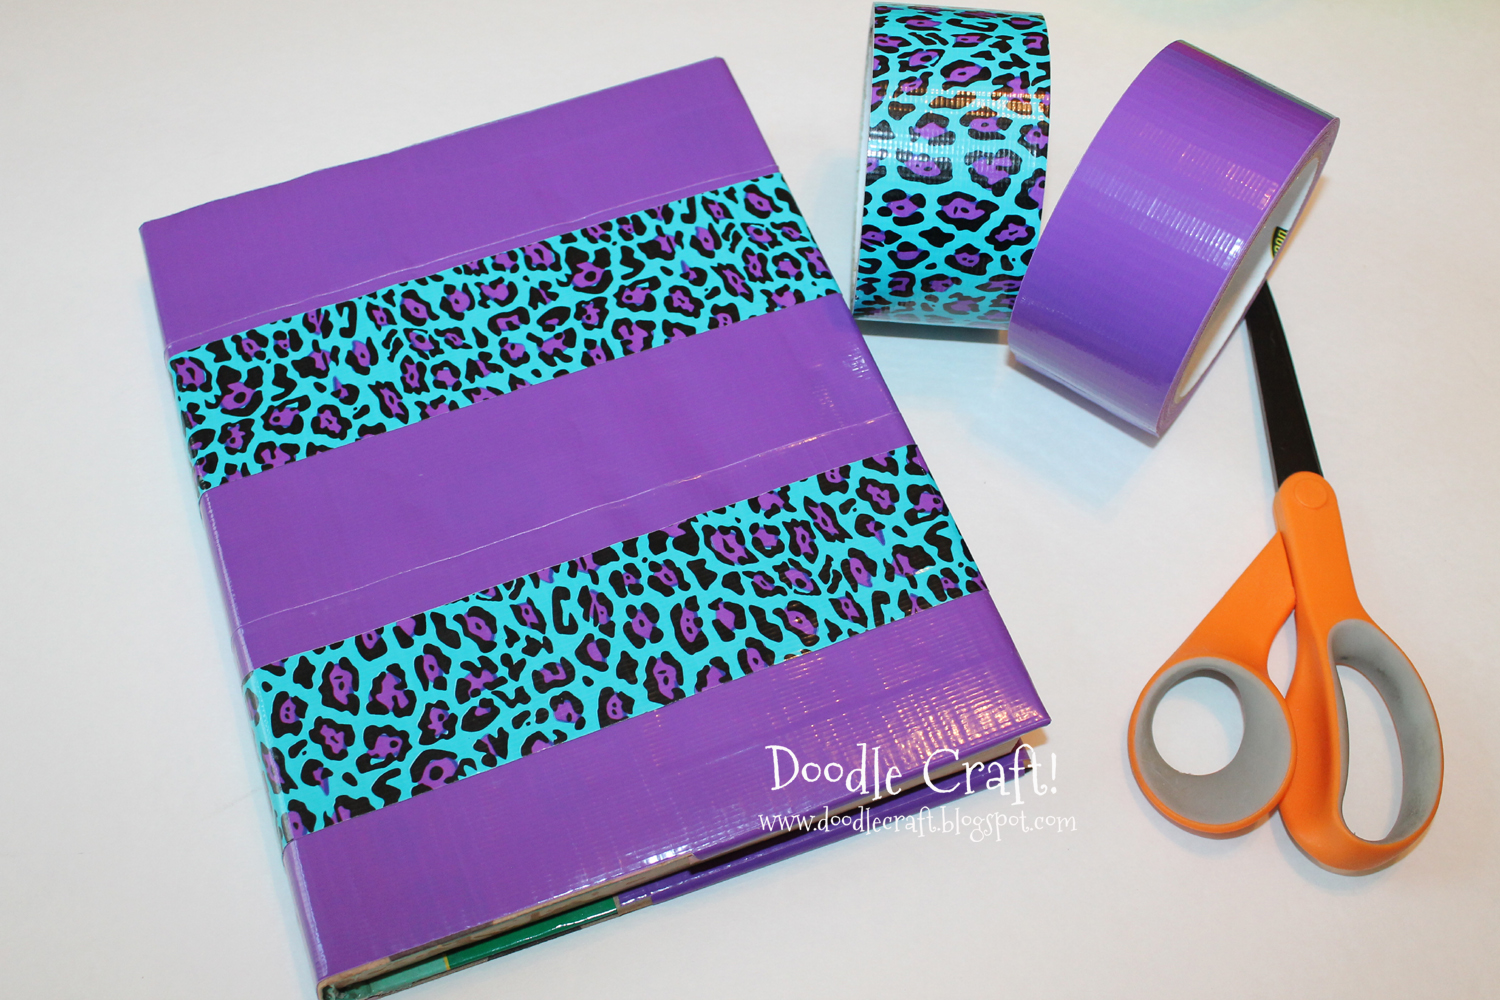 School Project Book Cover : Doodlecraft how to cover a textbook with duct tape